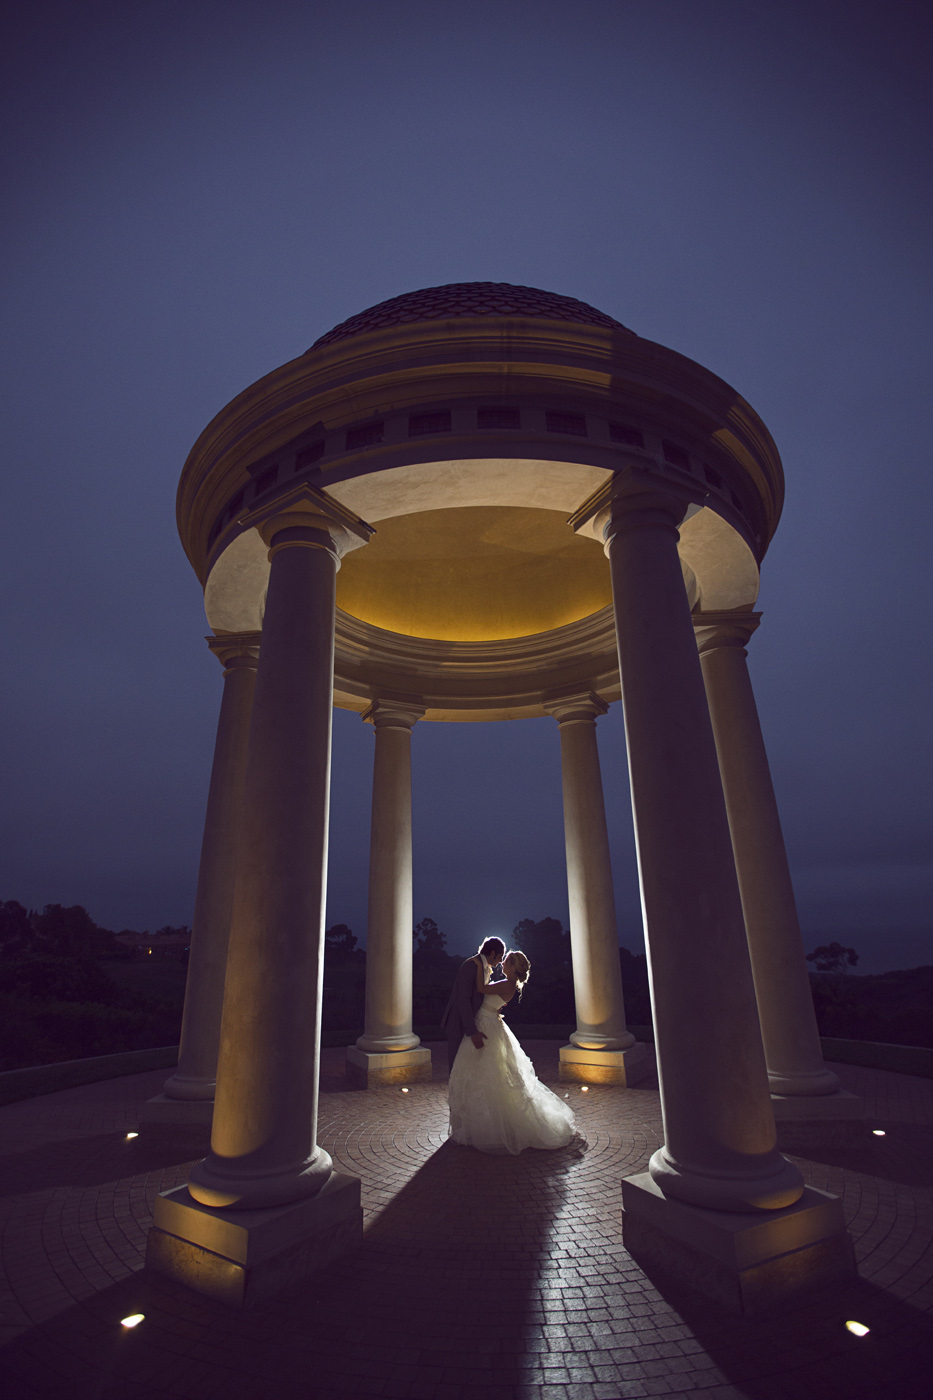 036DukePhotography_DukeImages_weddings_losangeles.jpg